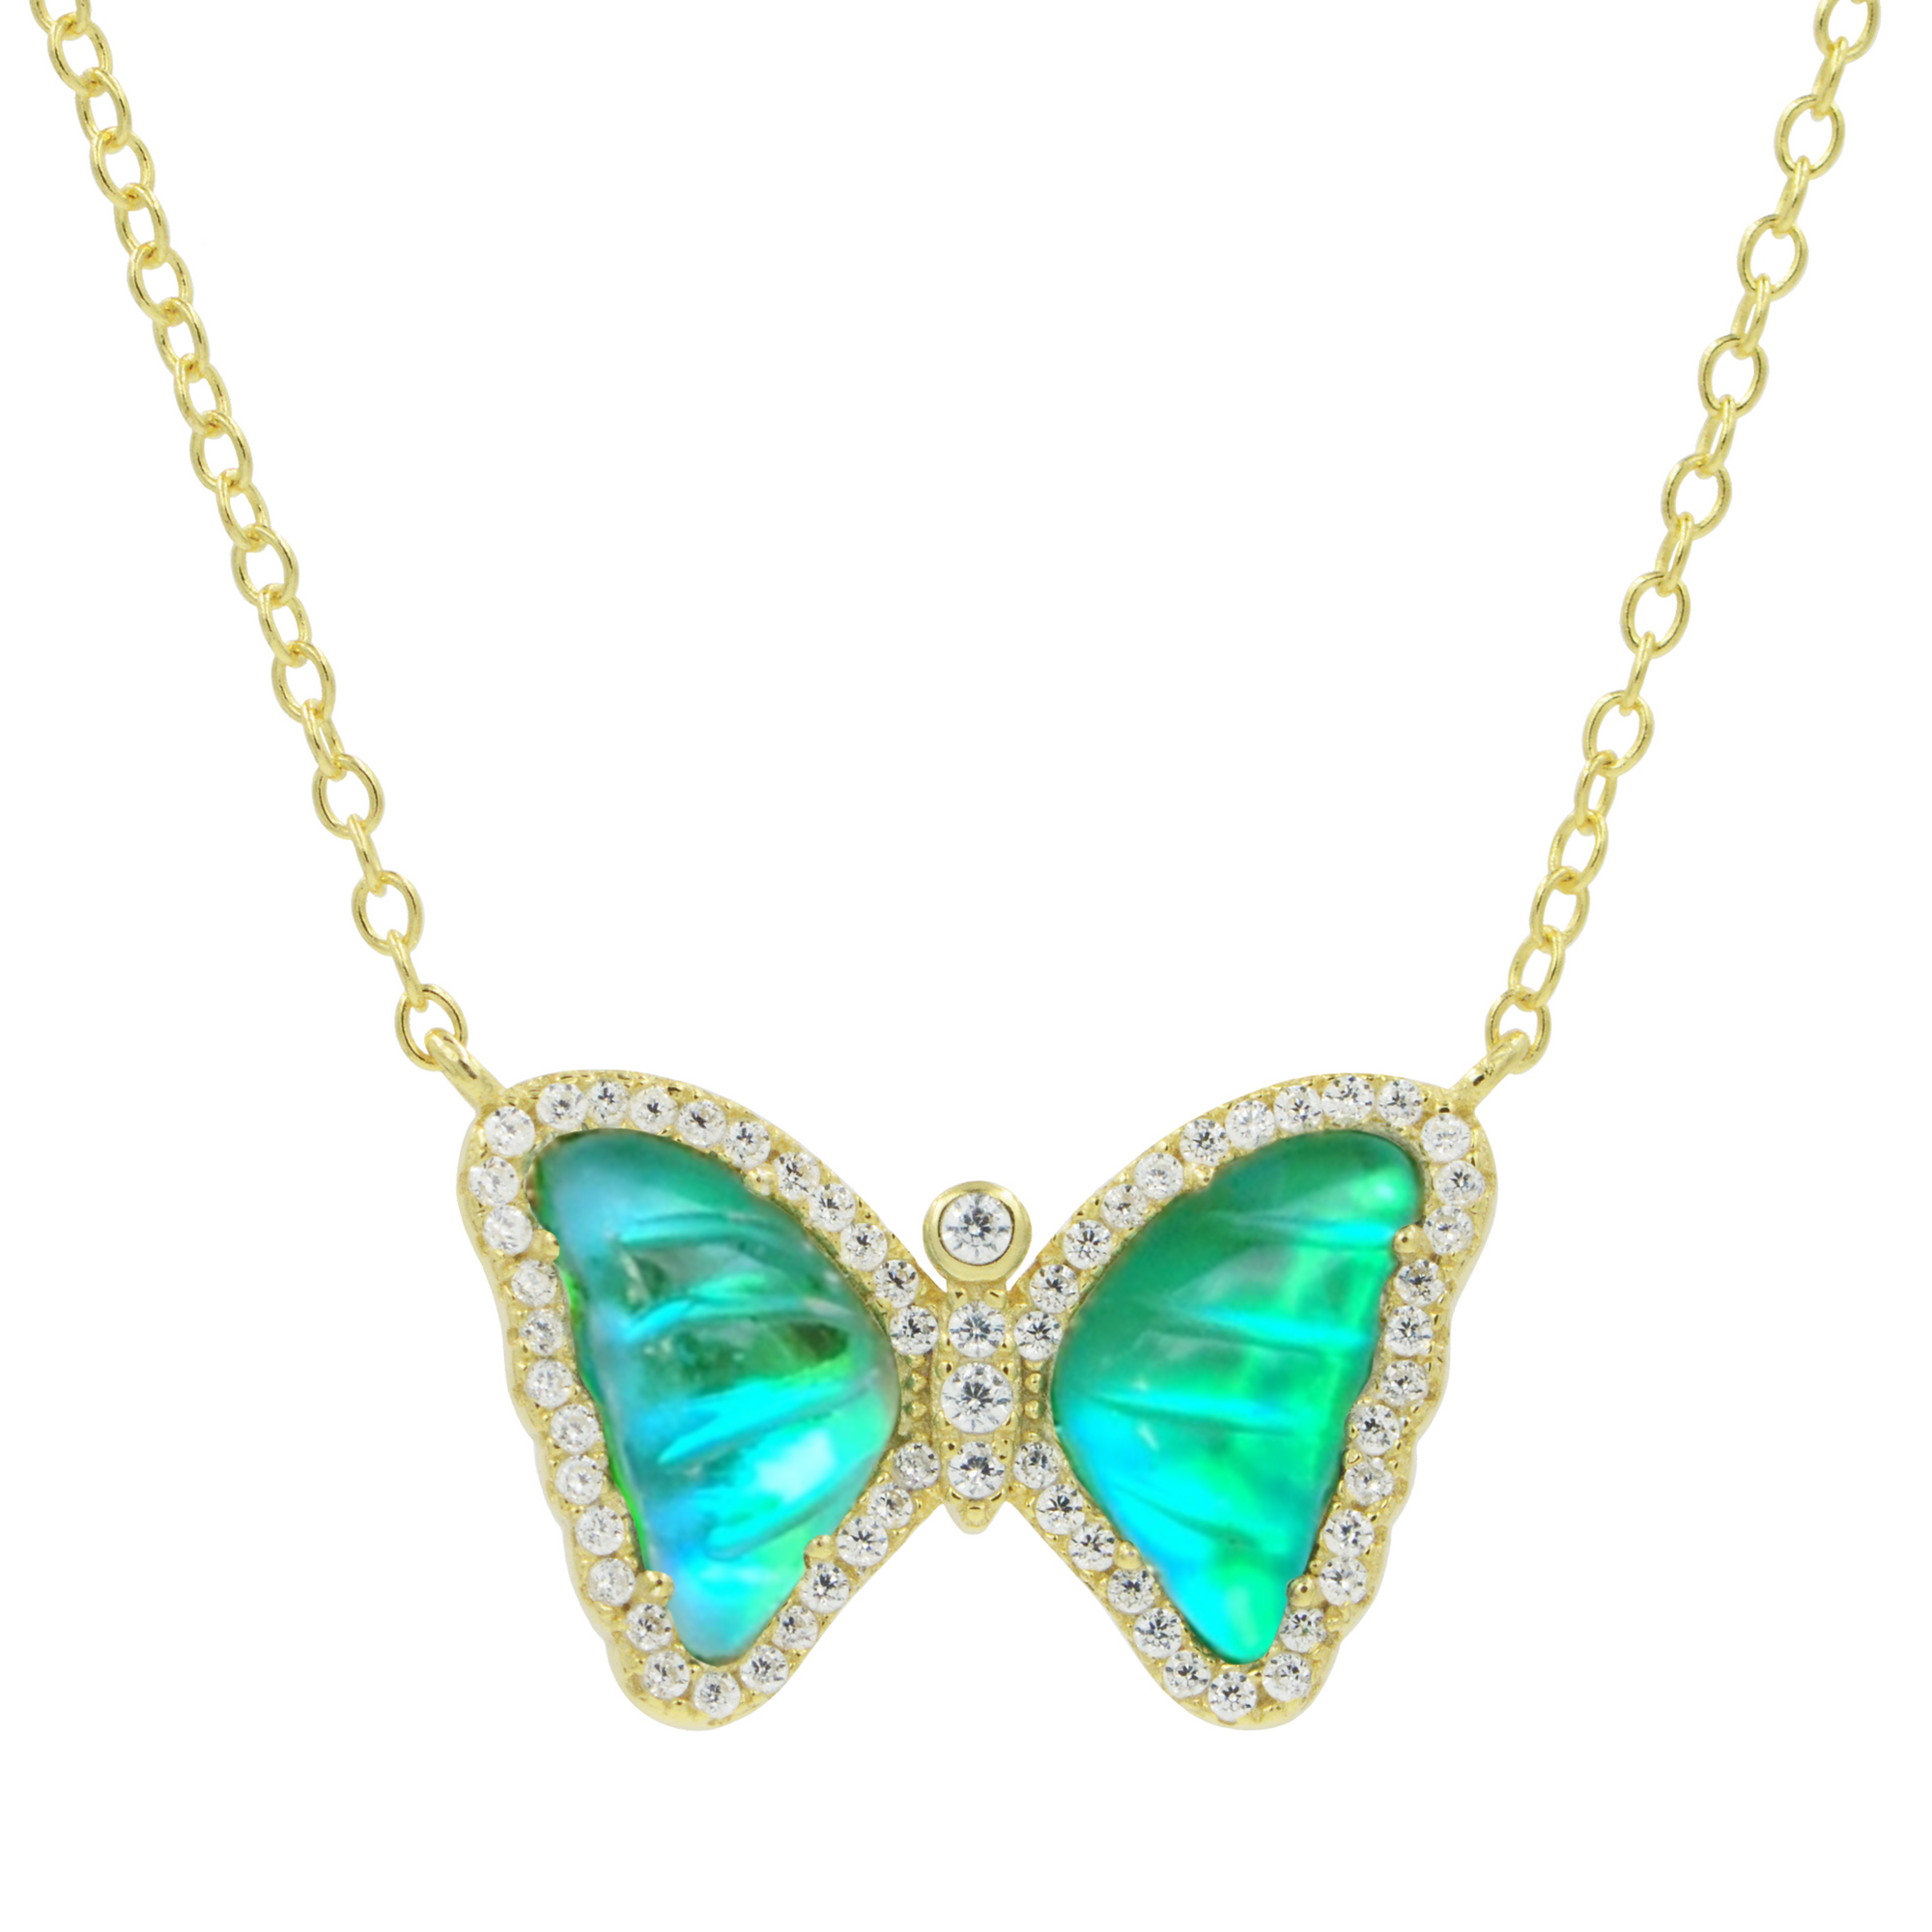 Limited Edition Morpho Butterfly Necklace